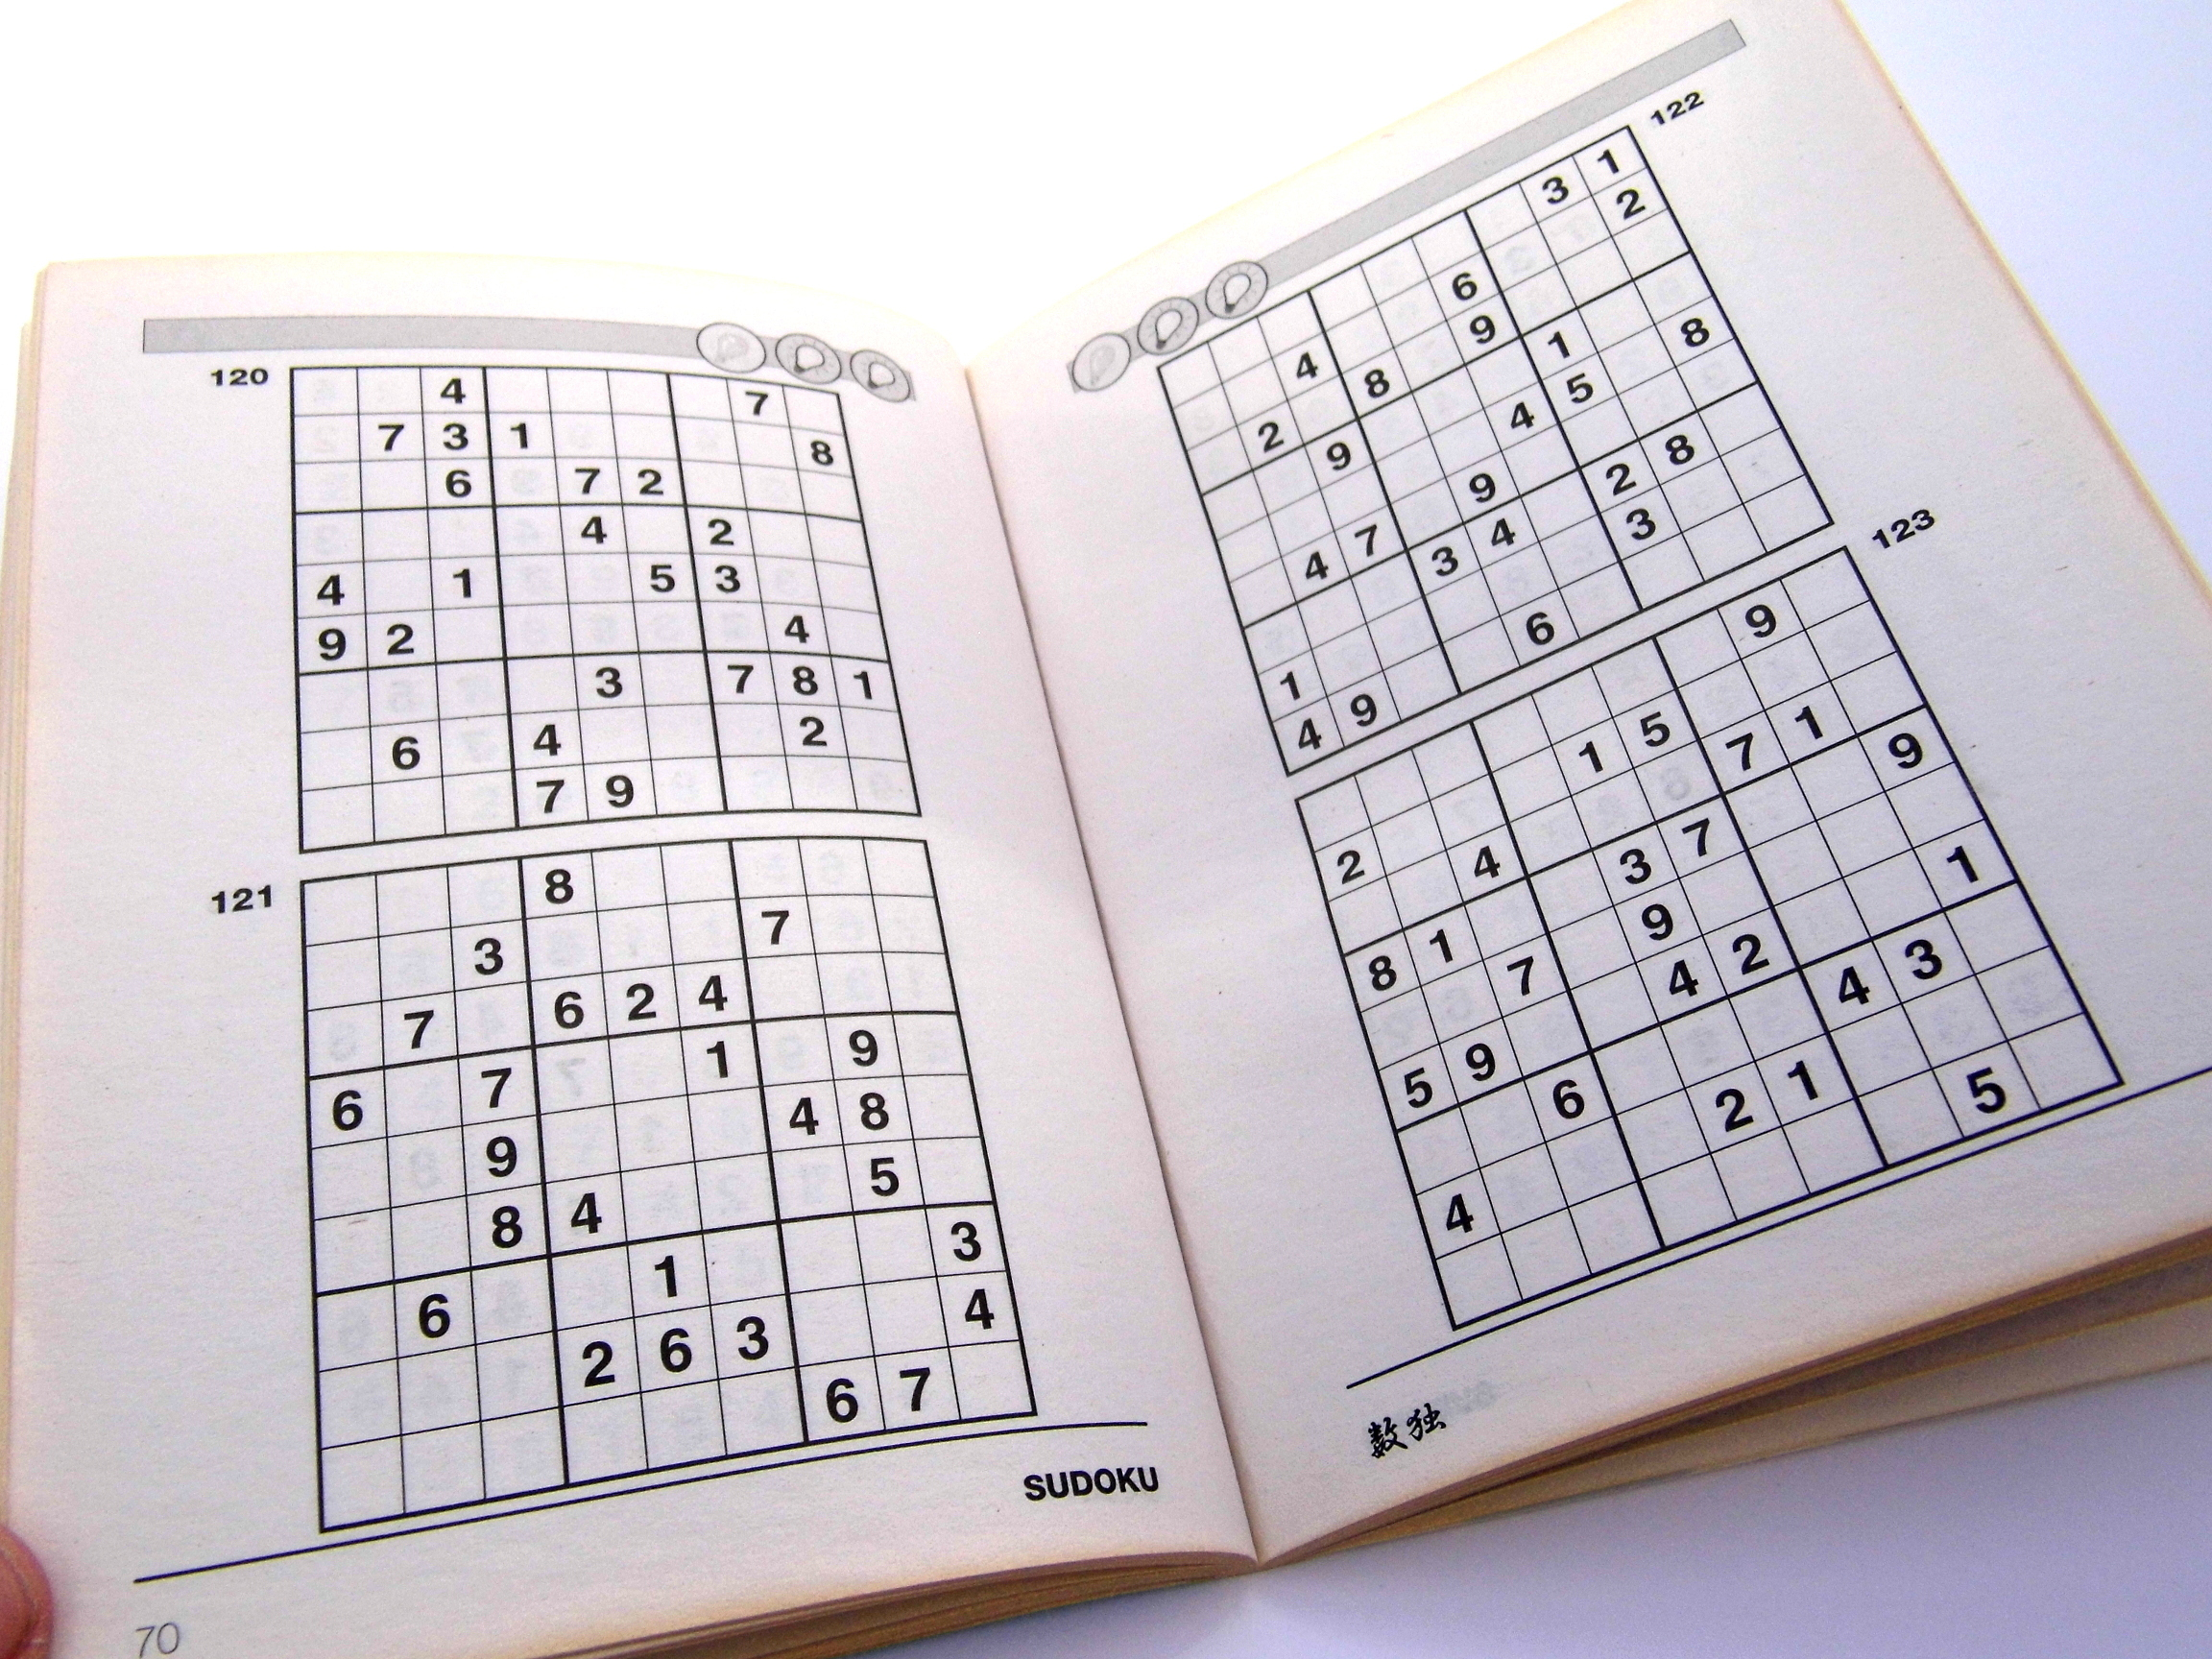 Archive Puzzles – 36 Evil Sudoku Puzzles – Books 1 To 10